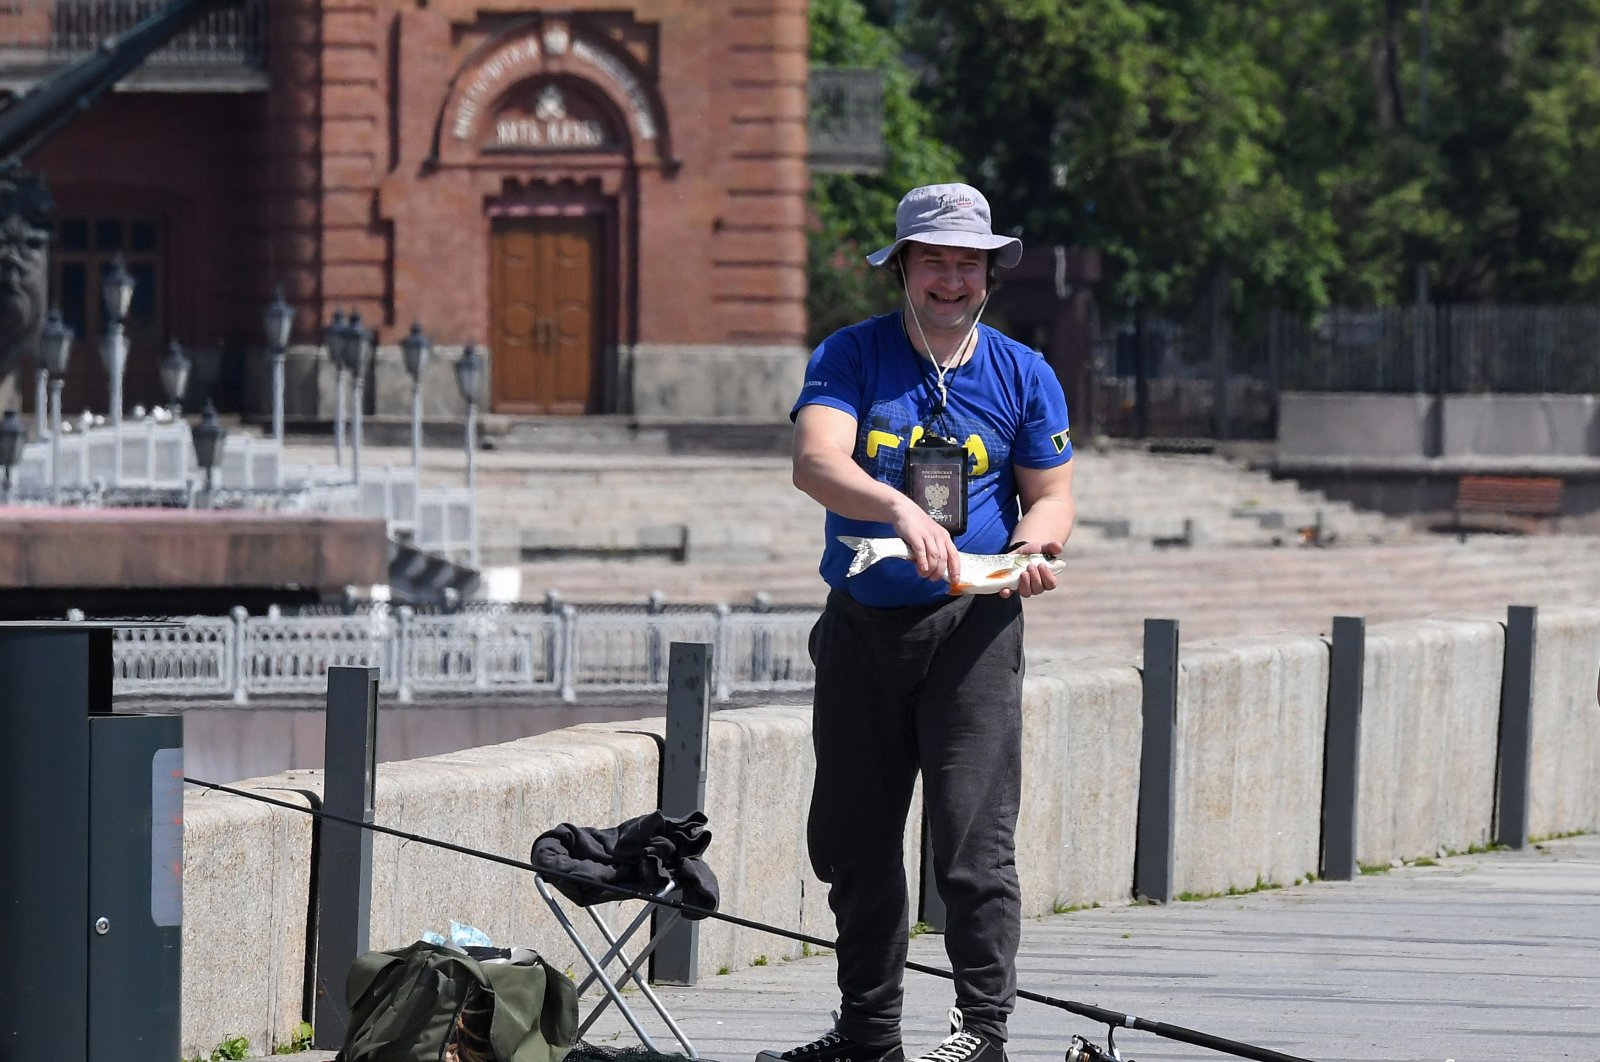 A man smiles holding his catch as he fishes at an embankment of the Moskva river in downtown Moscow on June 9, 2020. (AFP Photo)